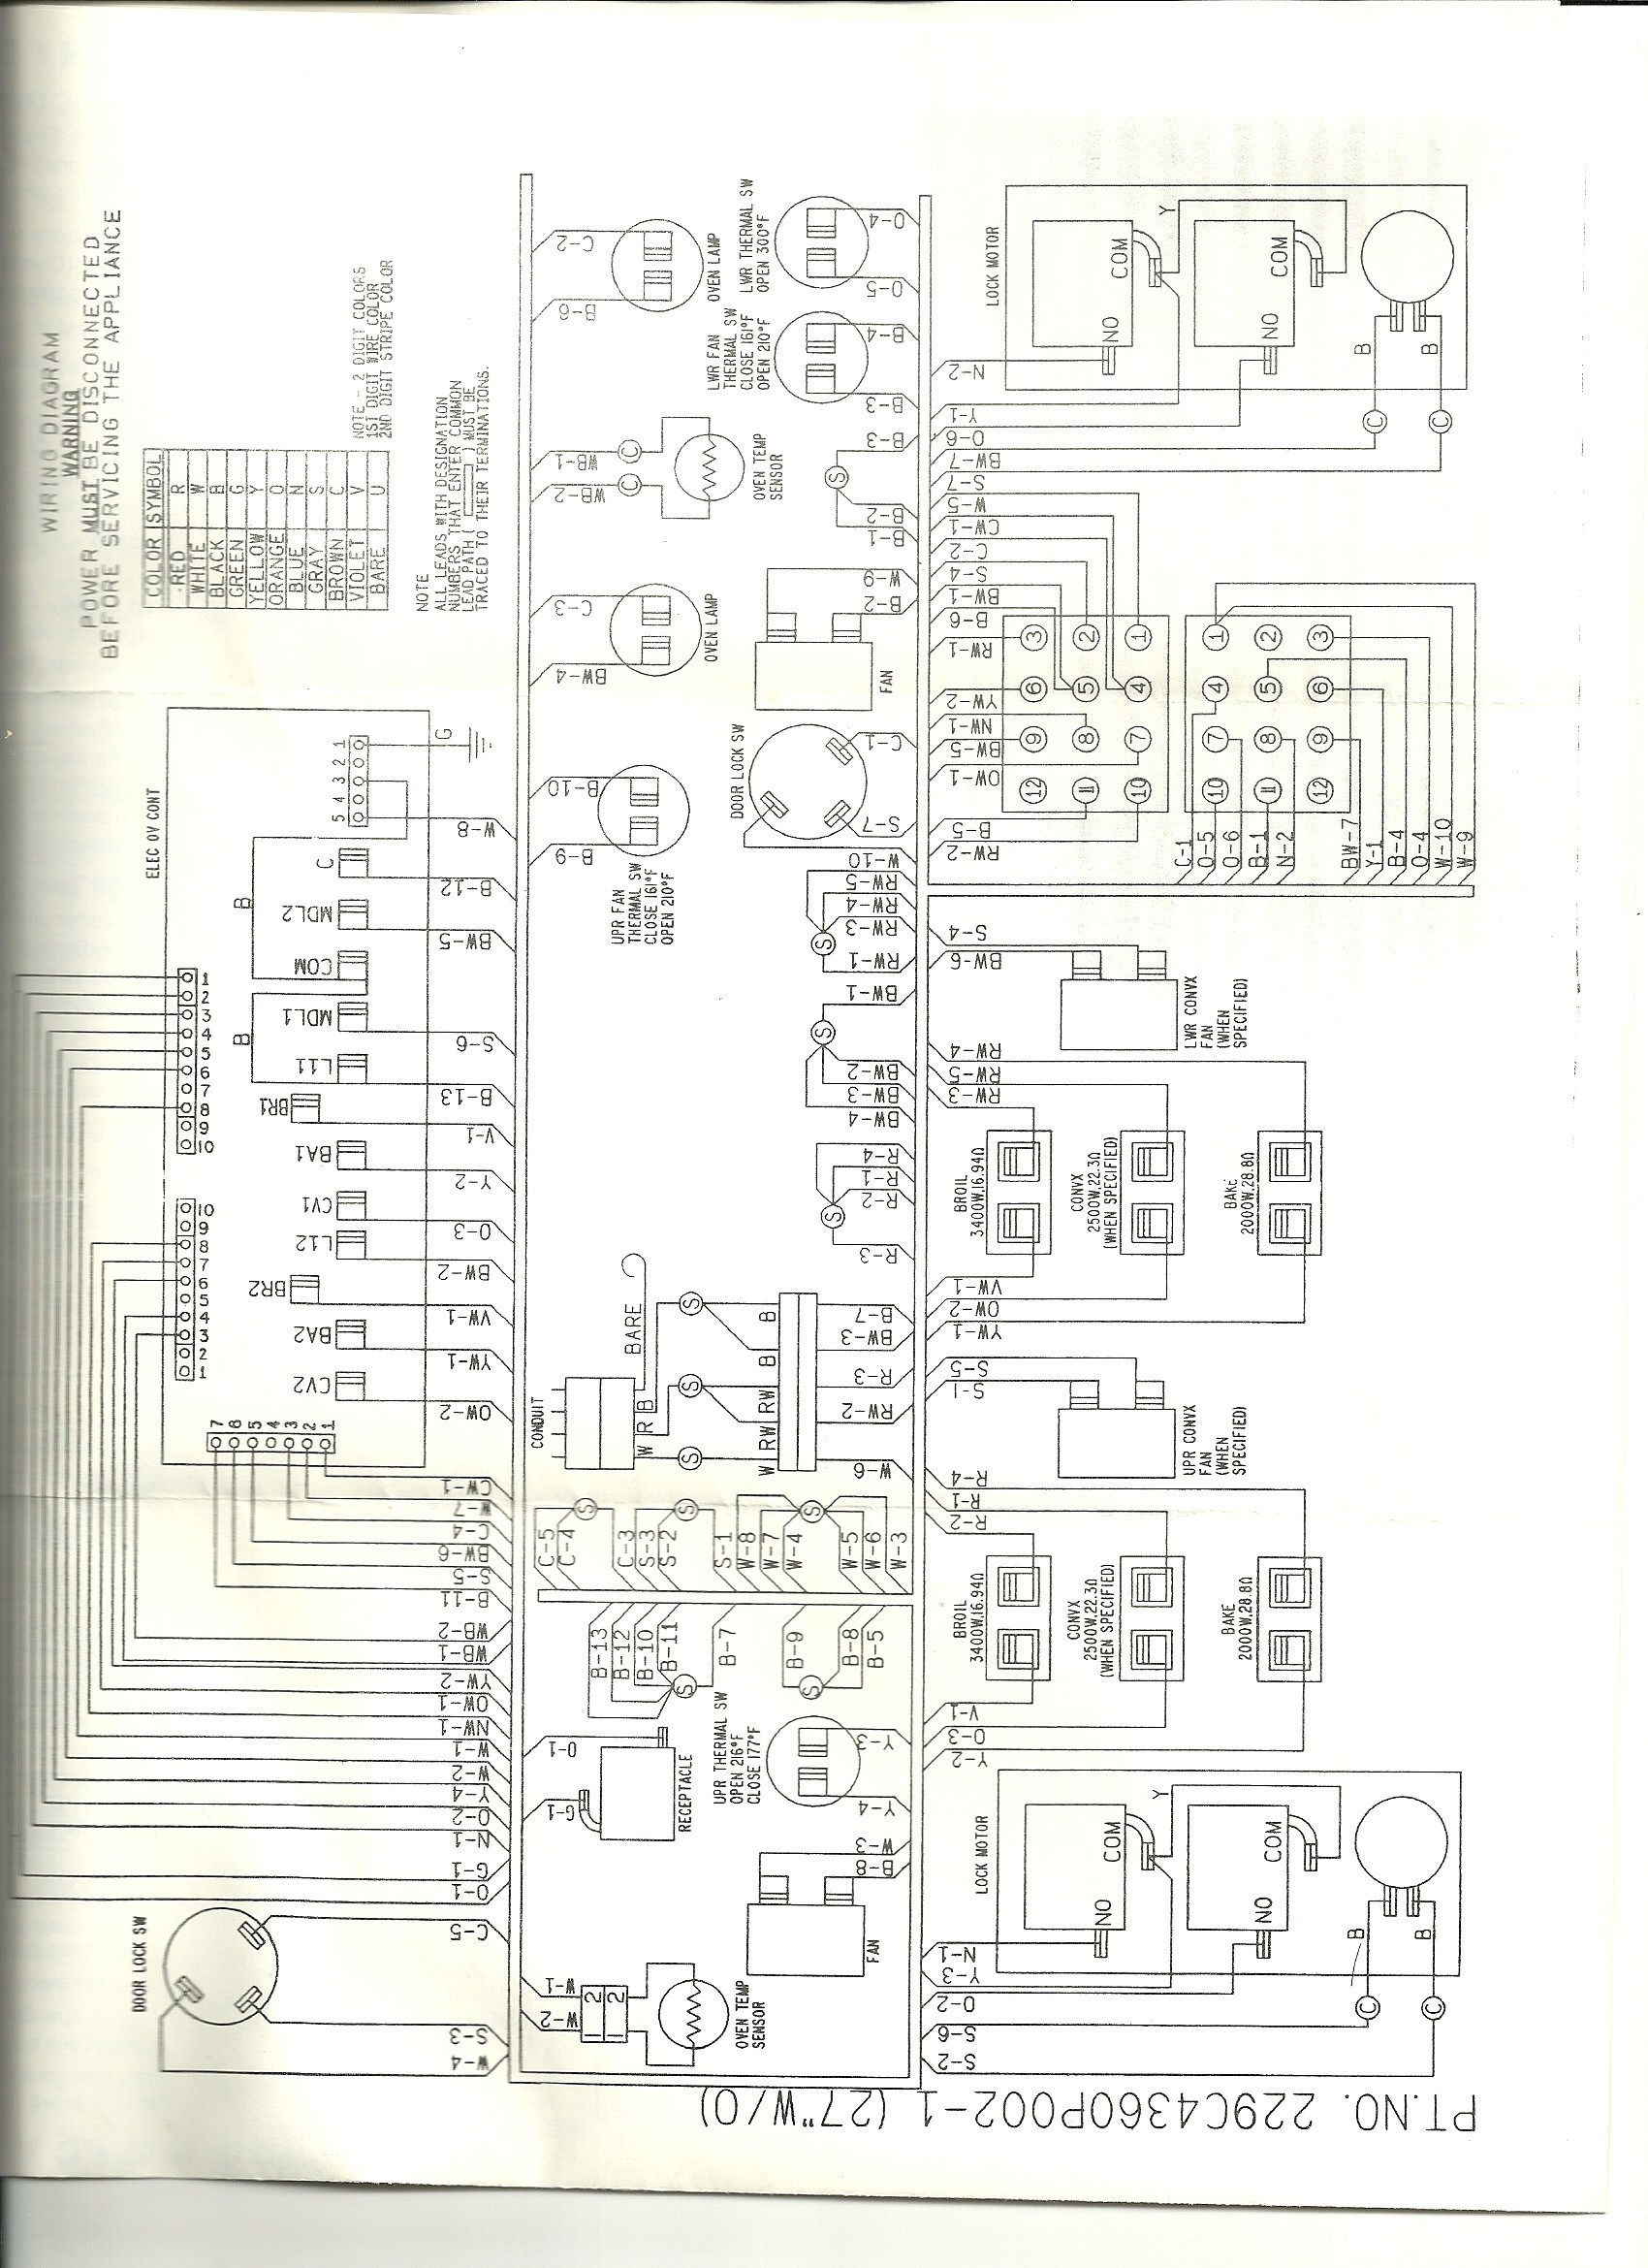 Ge Refrigerator Schematic Electrical | Wiring Diagram on